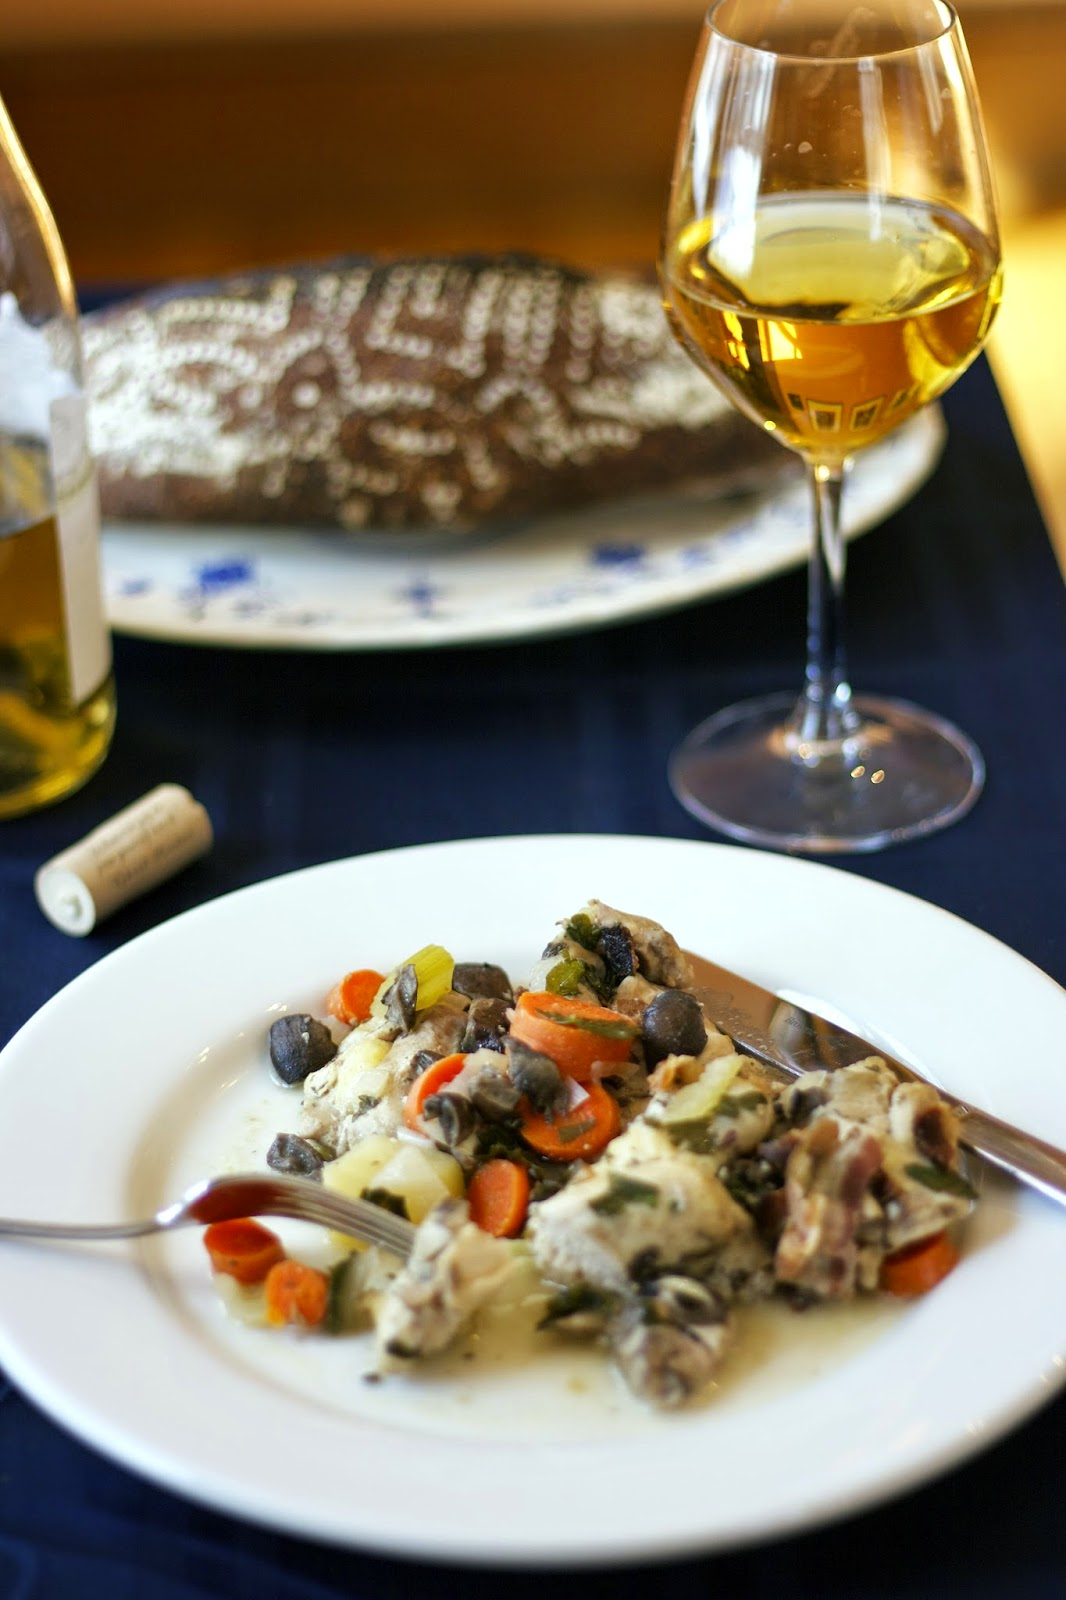 Slow Cooker Coq au Vin Blanc.... A classic French dinner with so little work. http://www.simplelivingeating.com/2015/03/slow-cooker-coq-au-vin-blanc.html